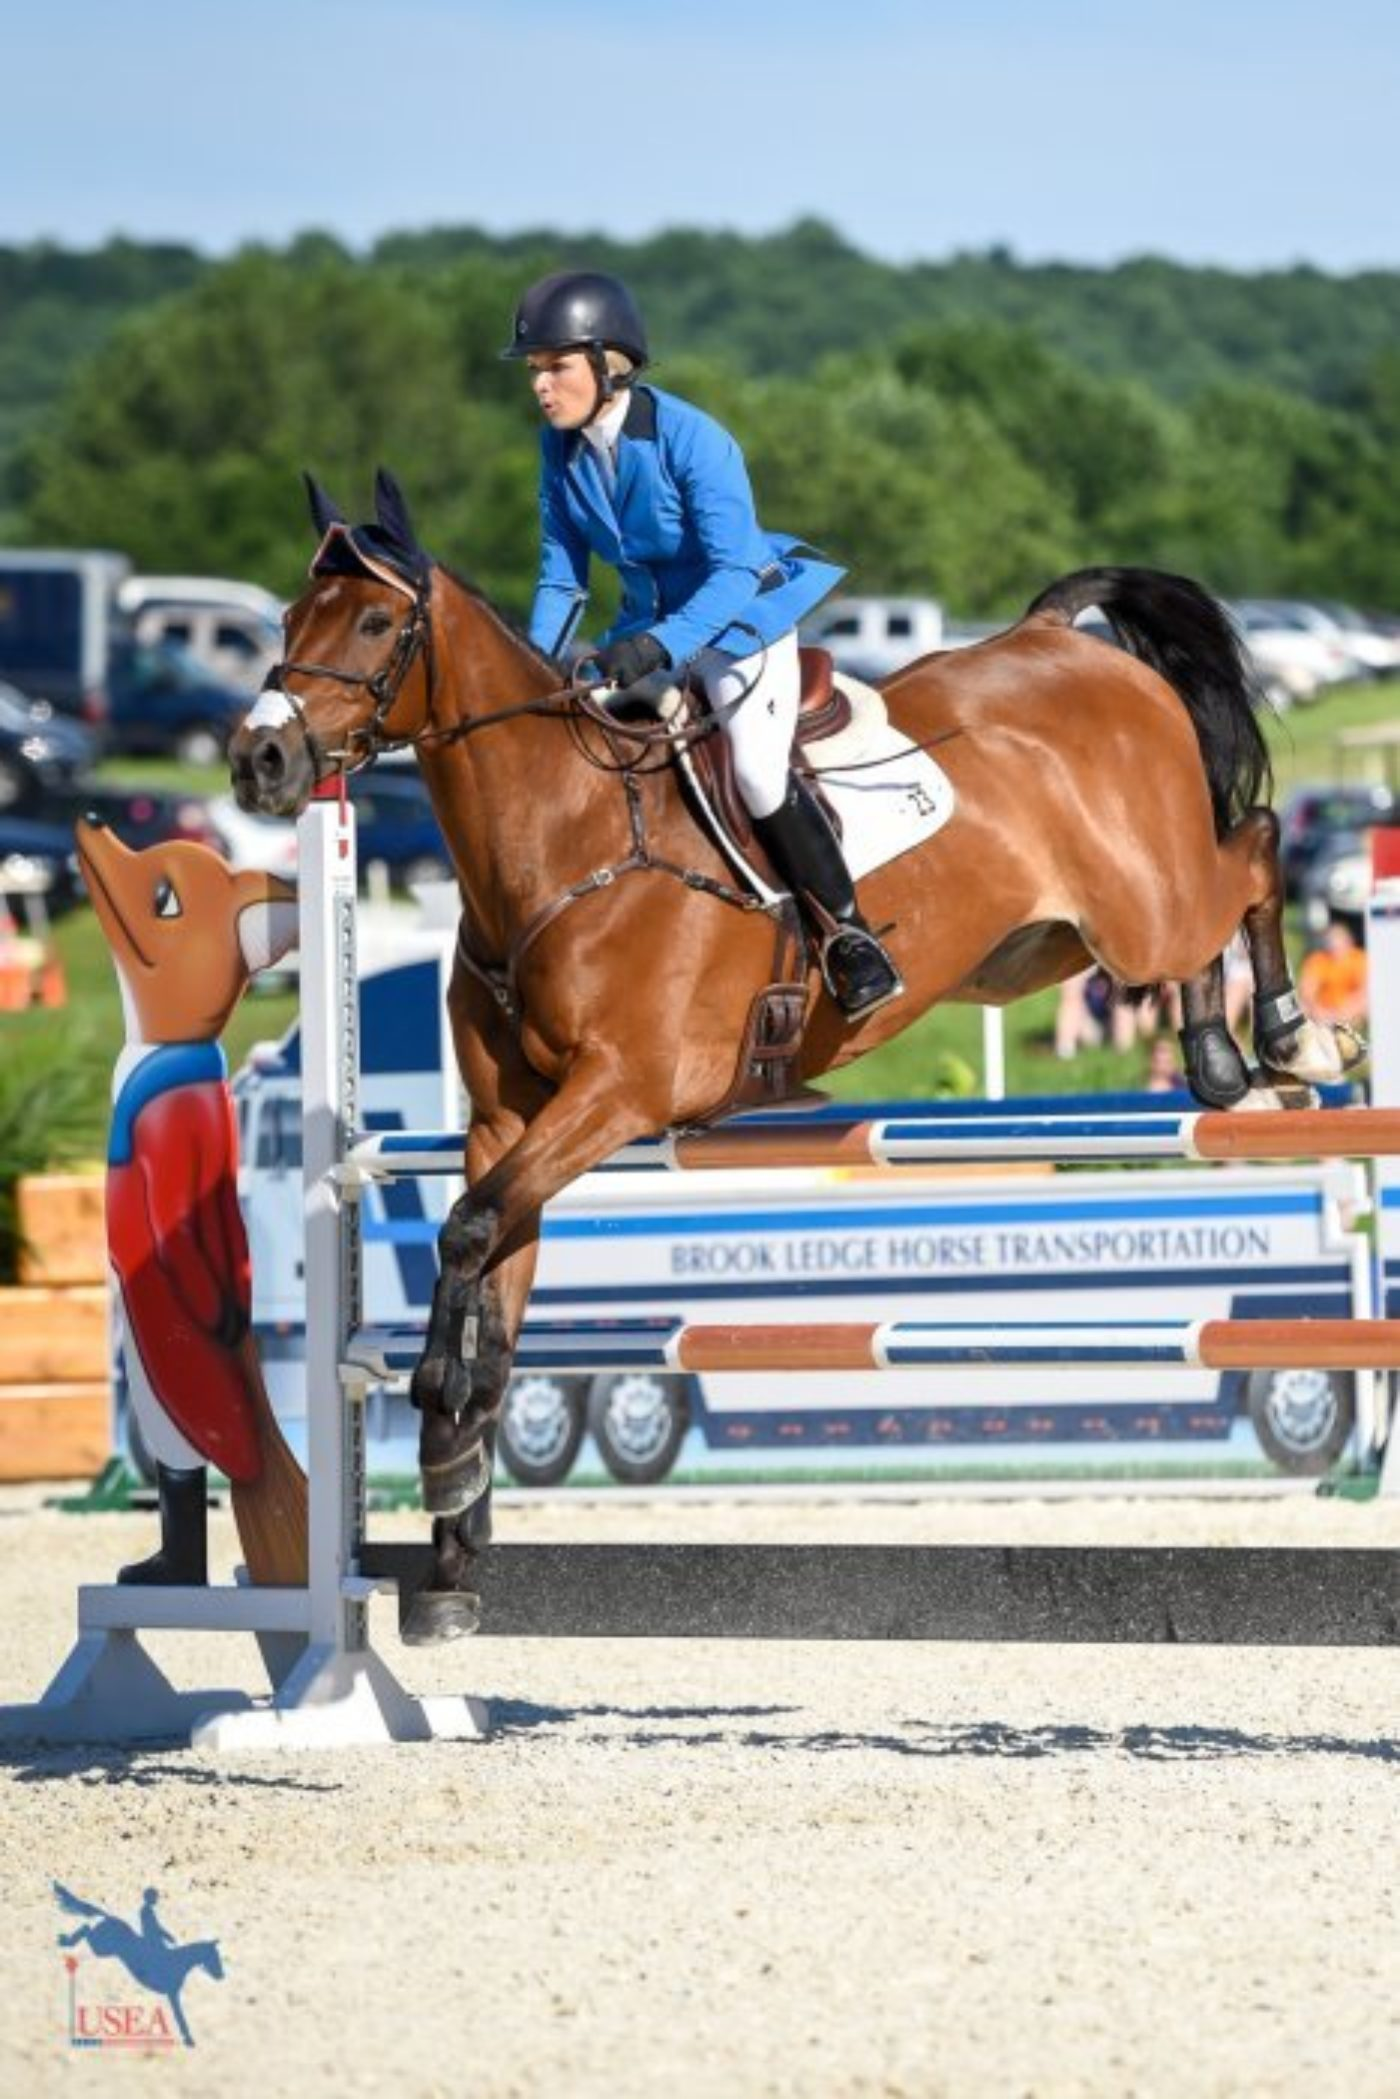 27thT - Lindsay Kelley and Cooley Cruise Control - 41.0